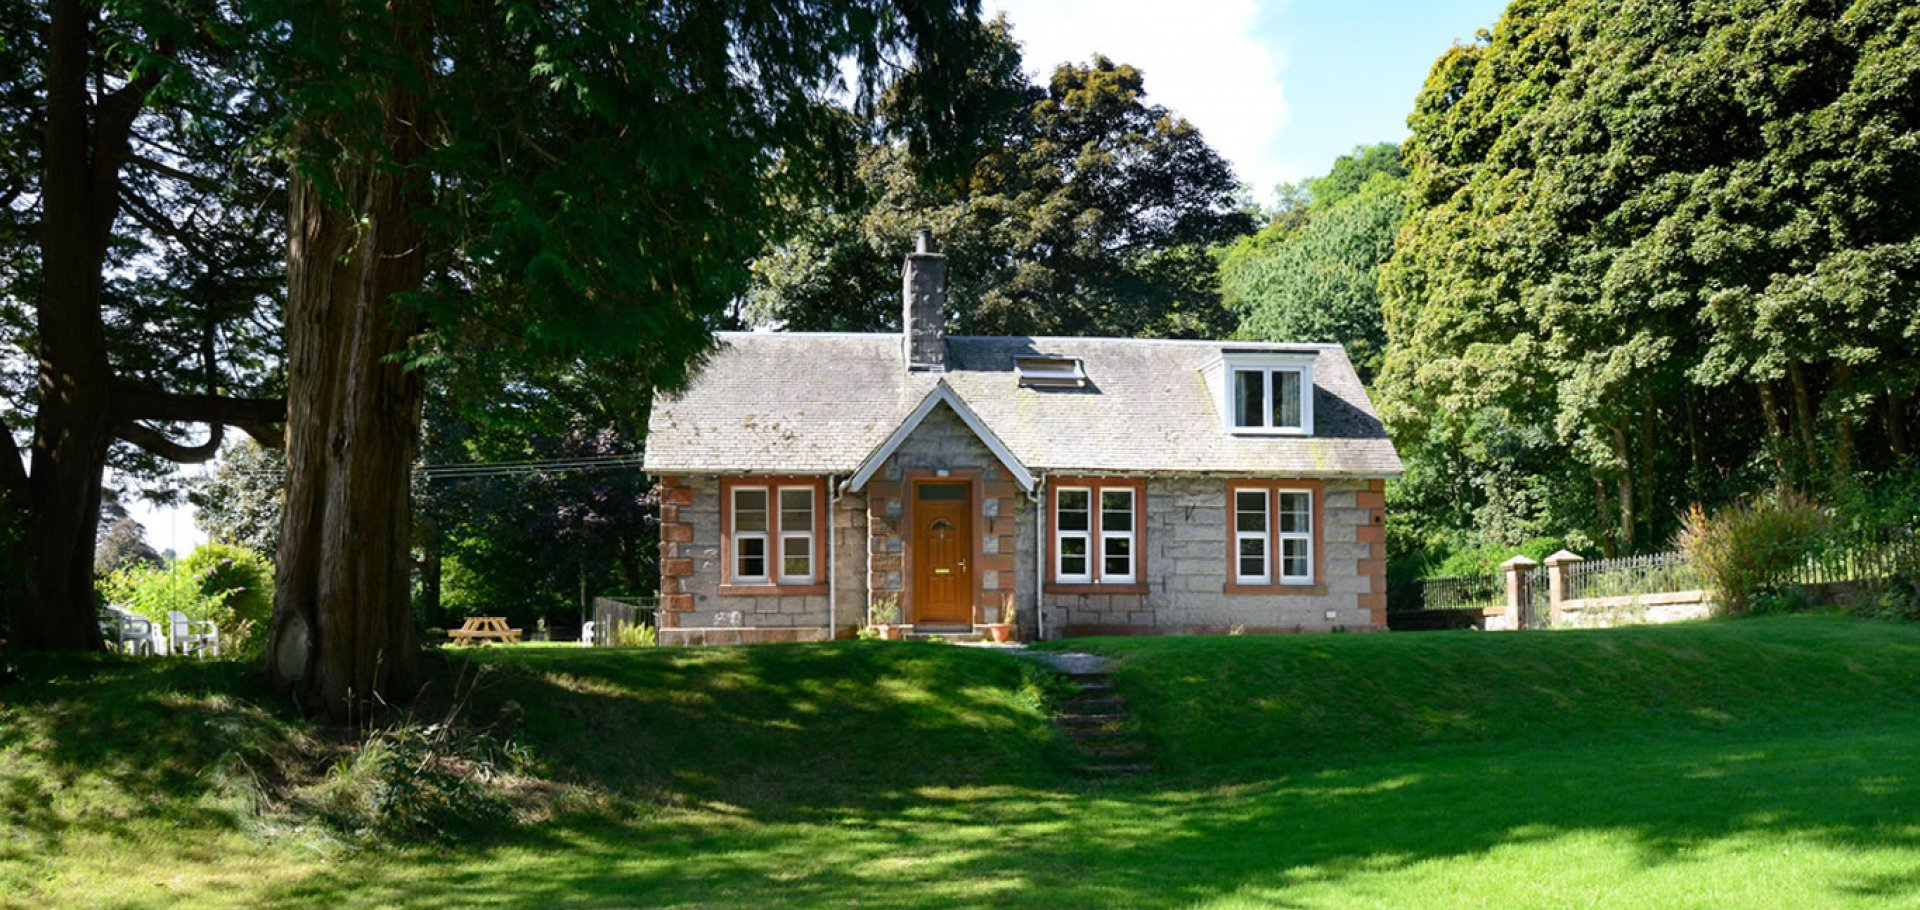 The Lodge self catering holiday accommodation near castle douglas dumfries and galloway